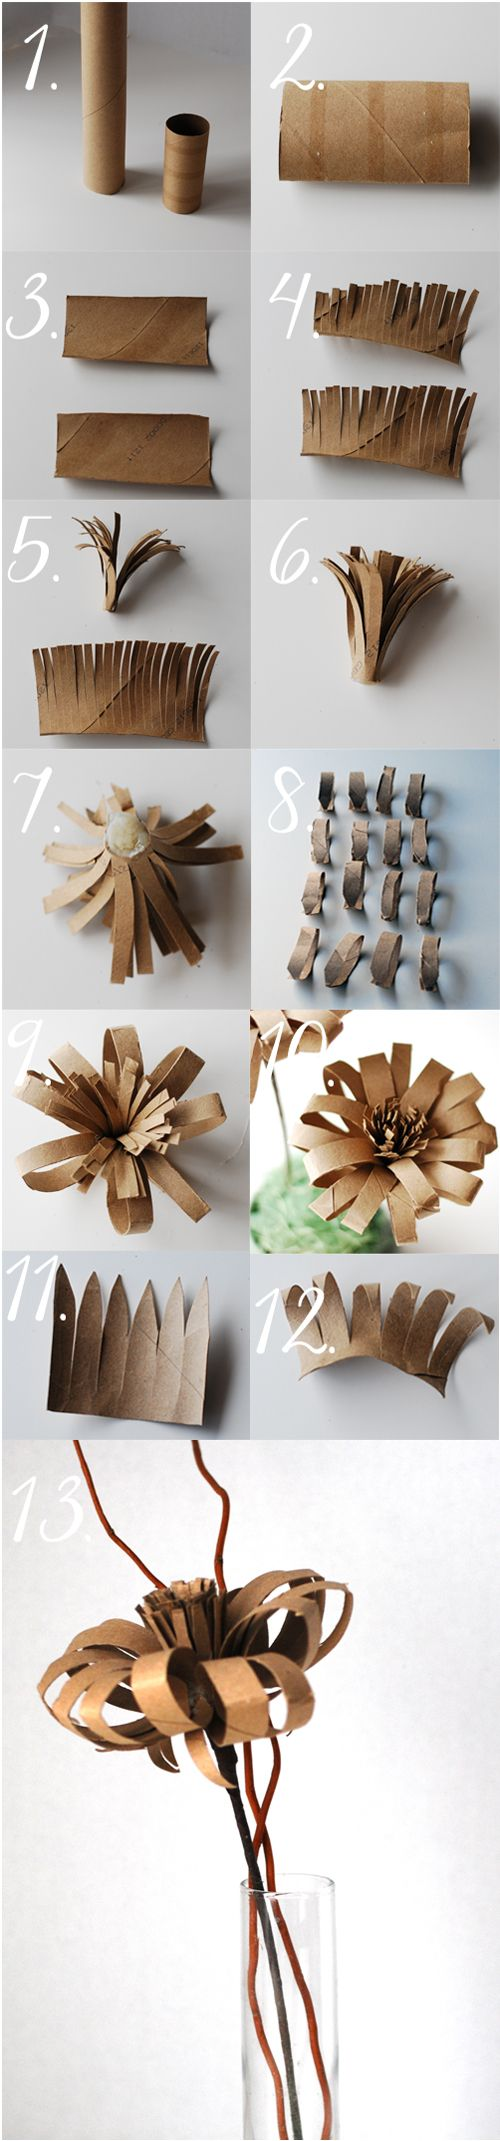 best fleurs papier images on pinterest paper flowers craft